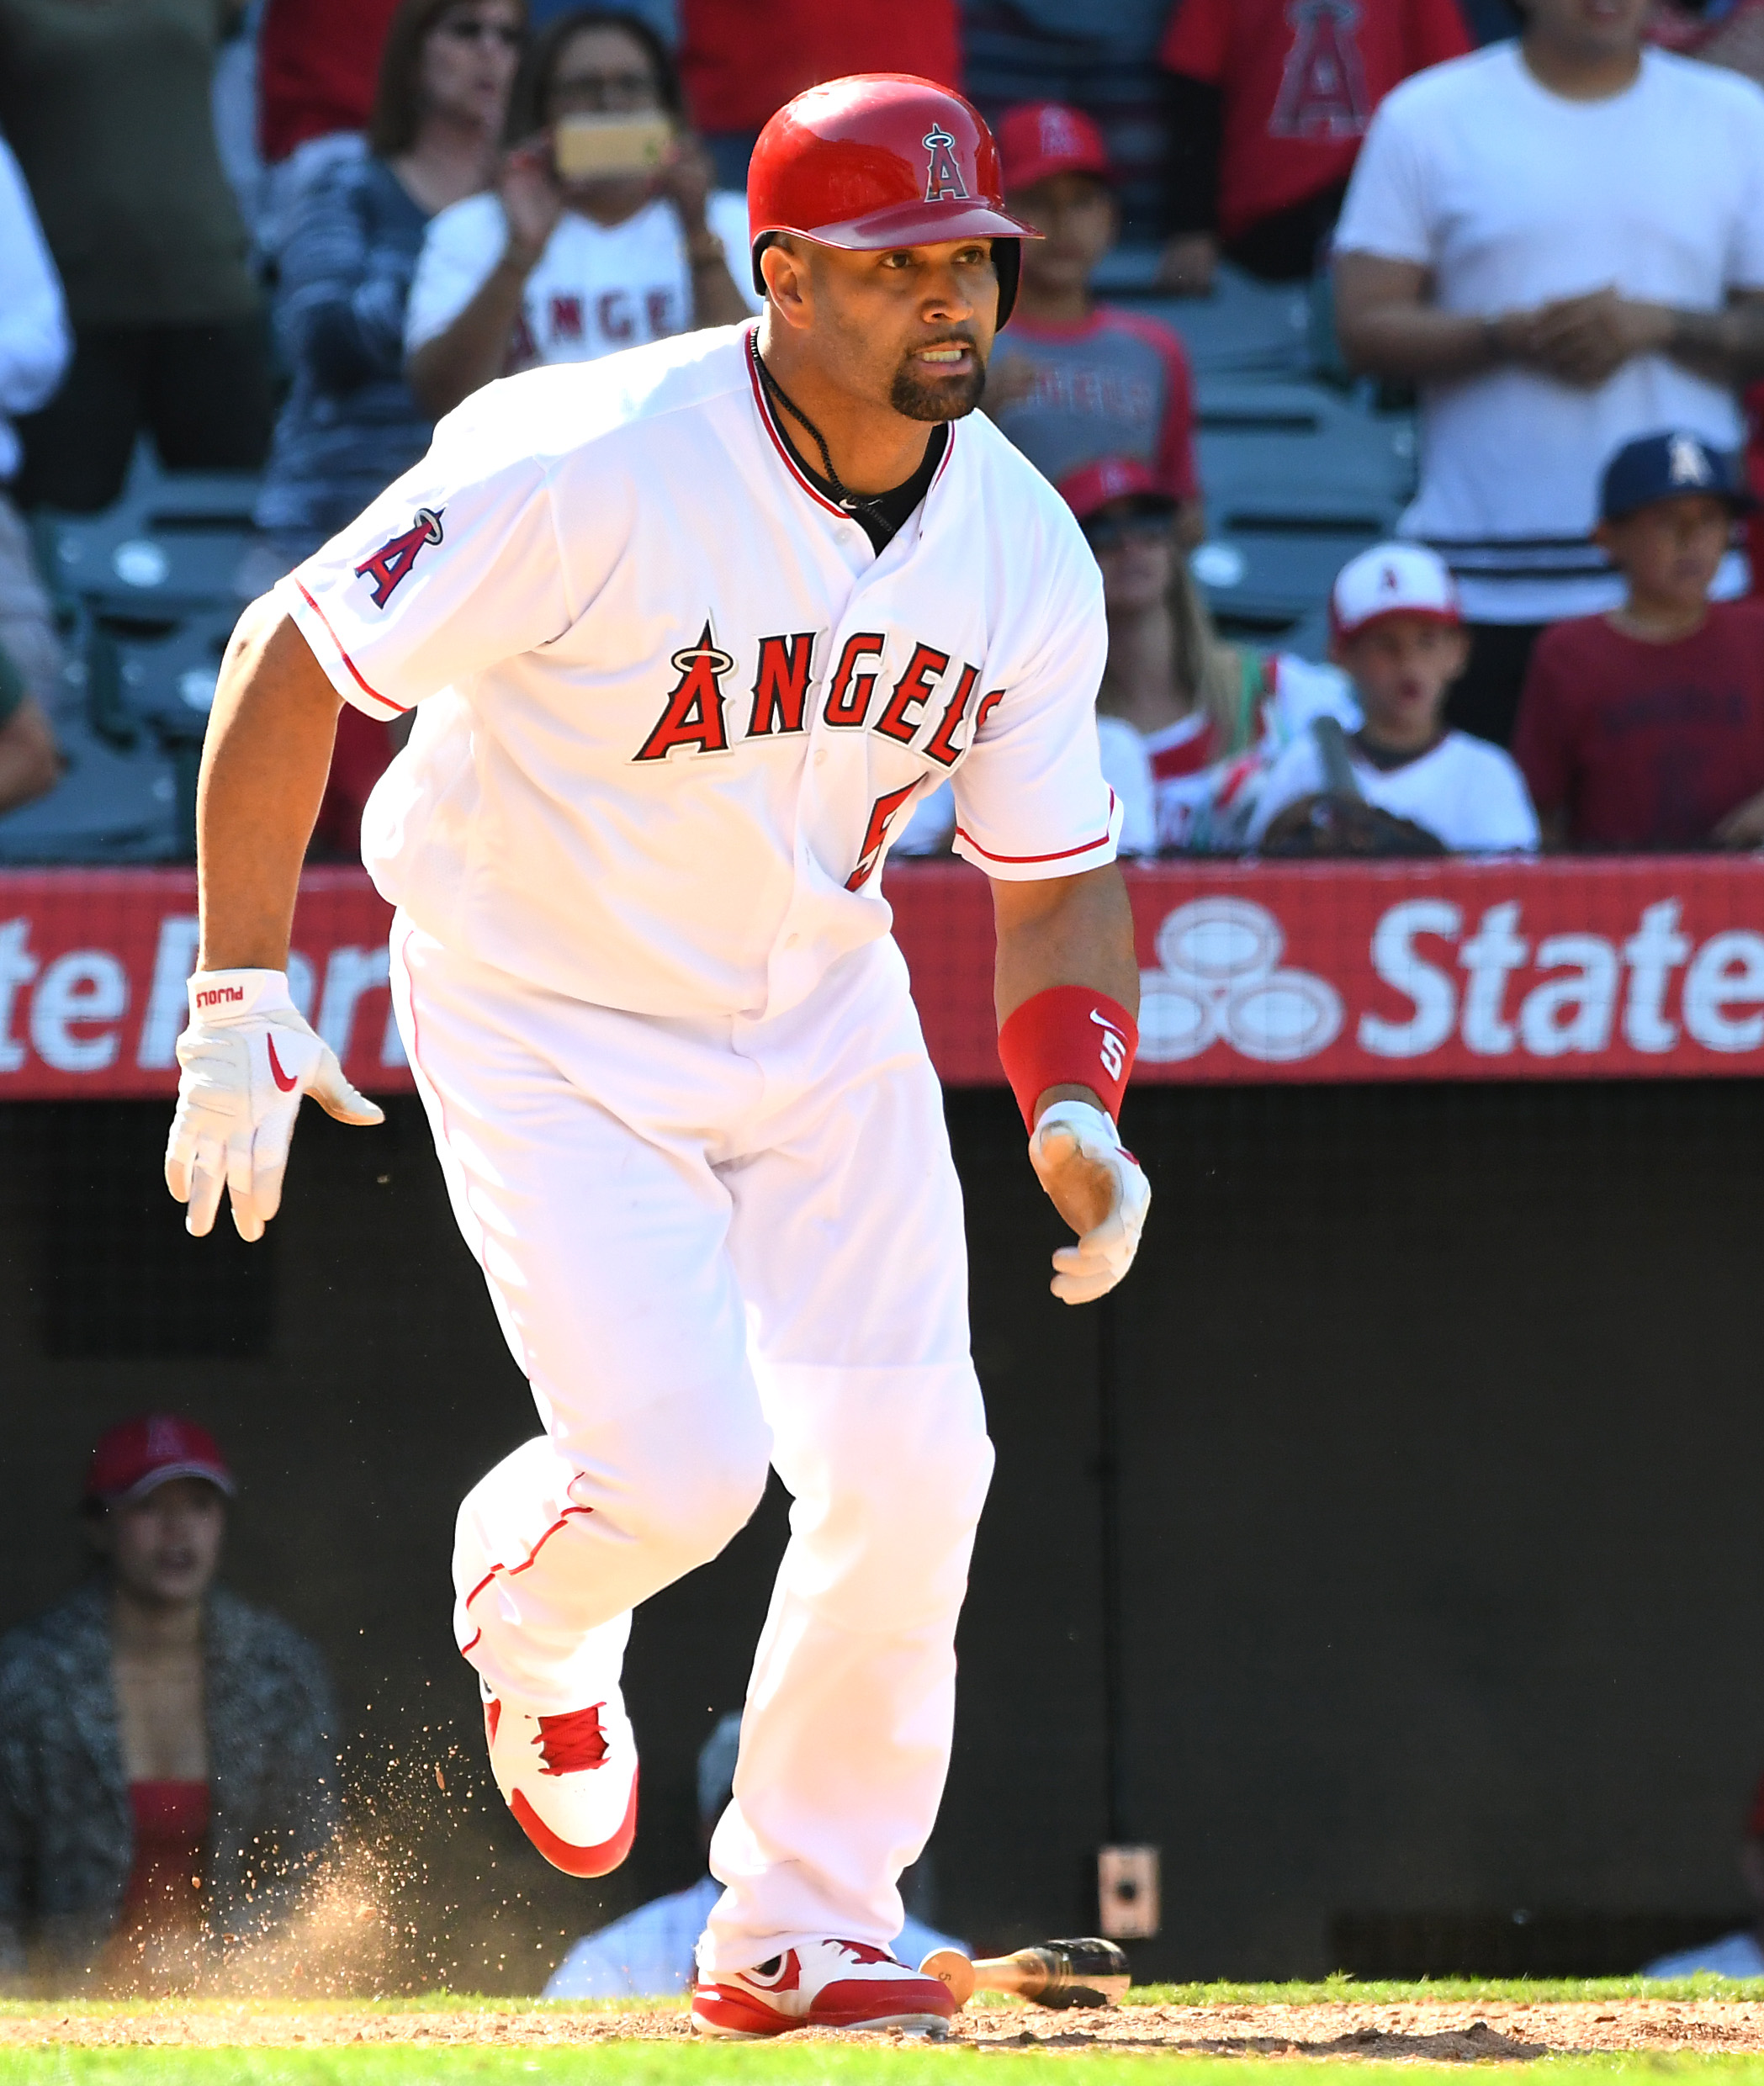 10004155-mlb-seattle-mariners-at-los-angeles-angels